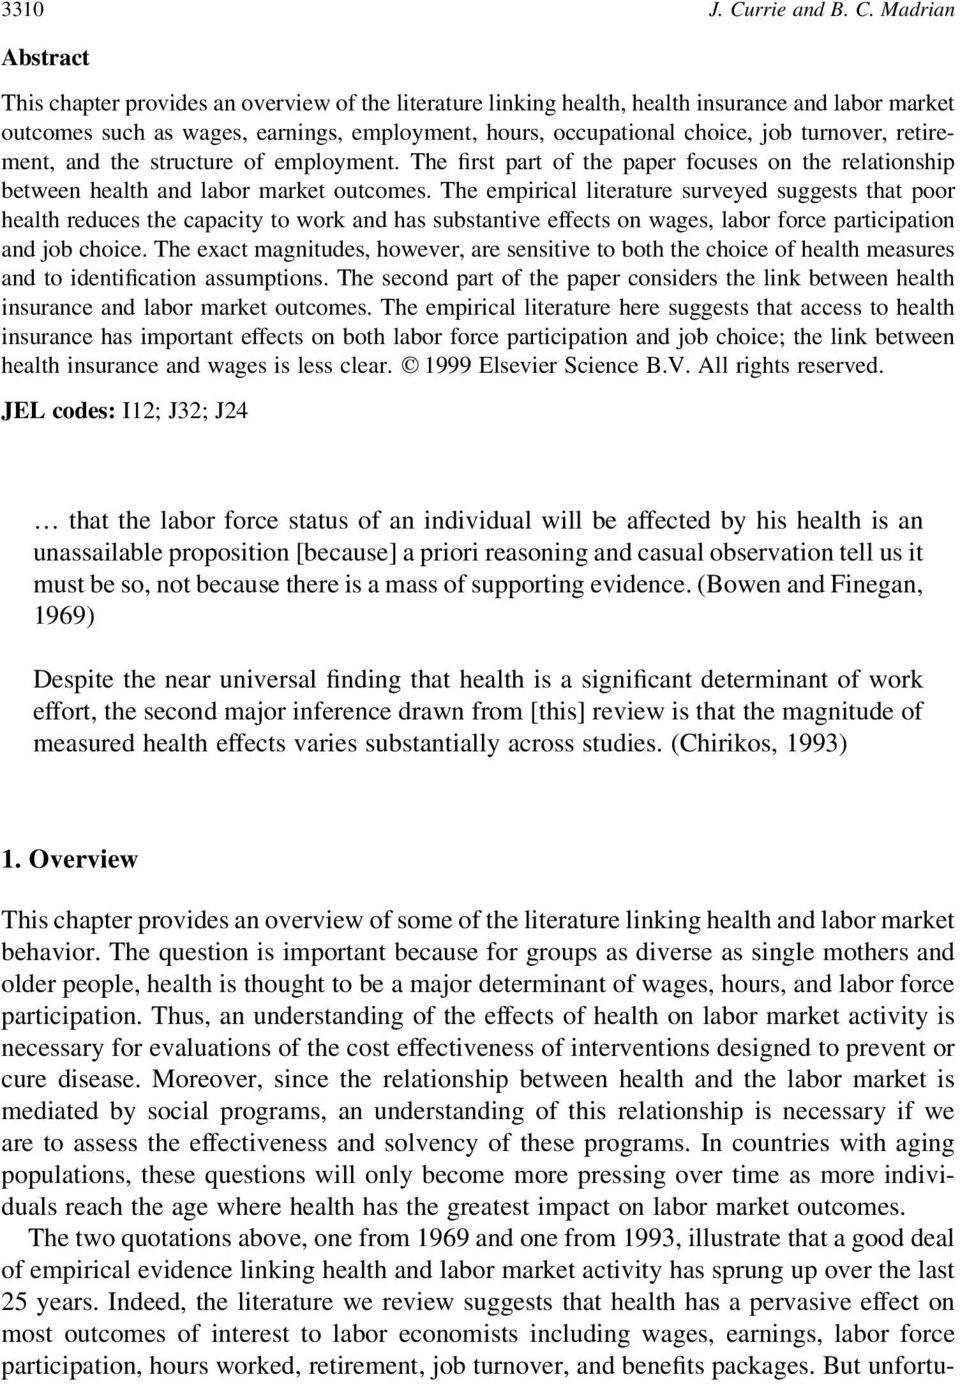 Madrian Abstract This chapter provides an overview of the literature linking health, health insurance and labor market outcomes such as wages, earnings, employment, hours, occupational choice, job